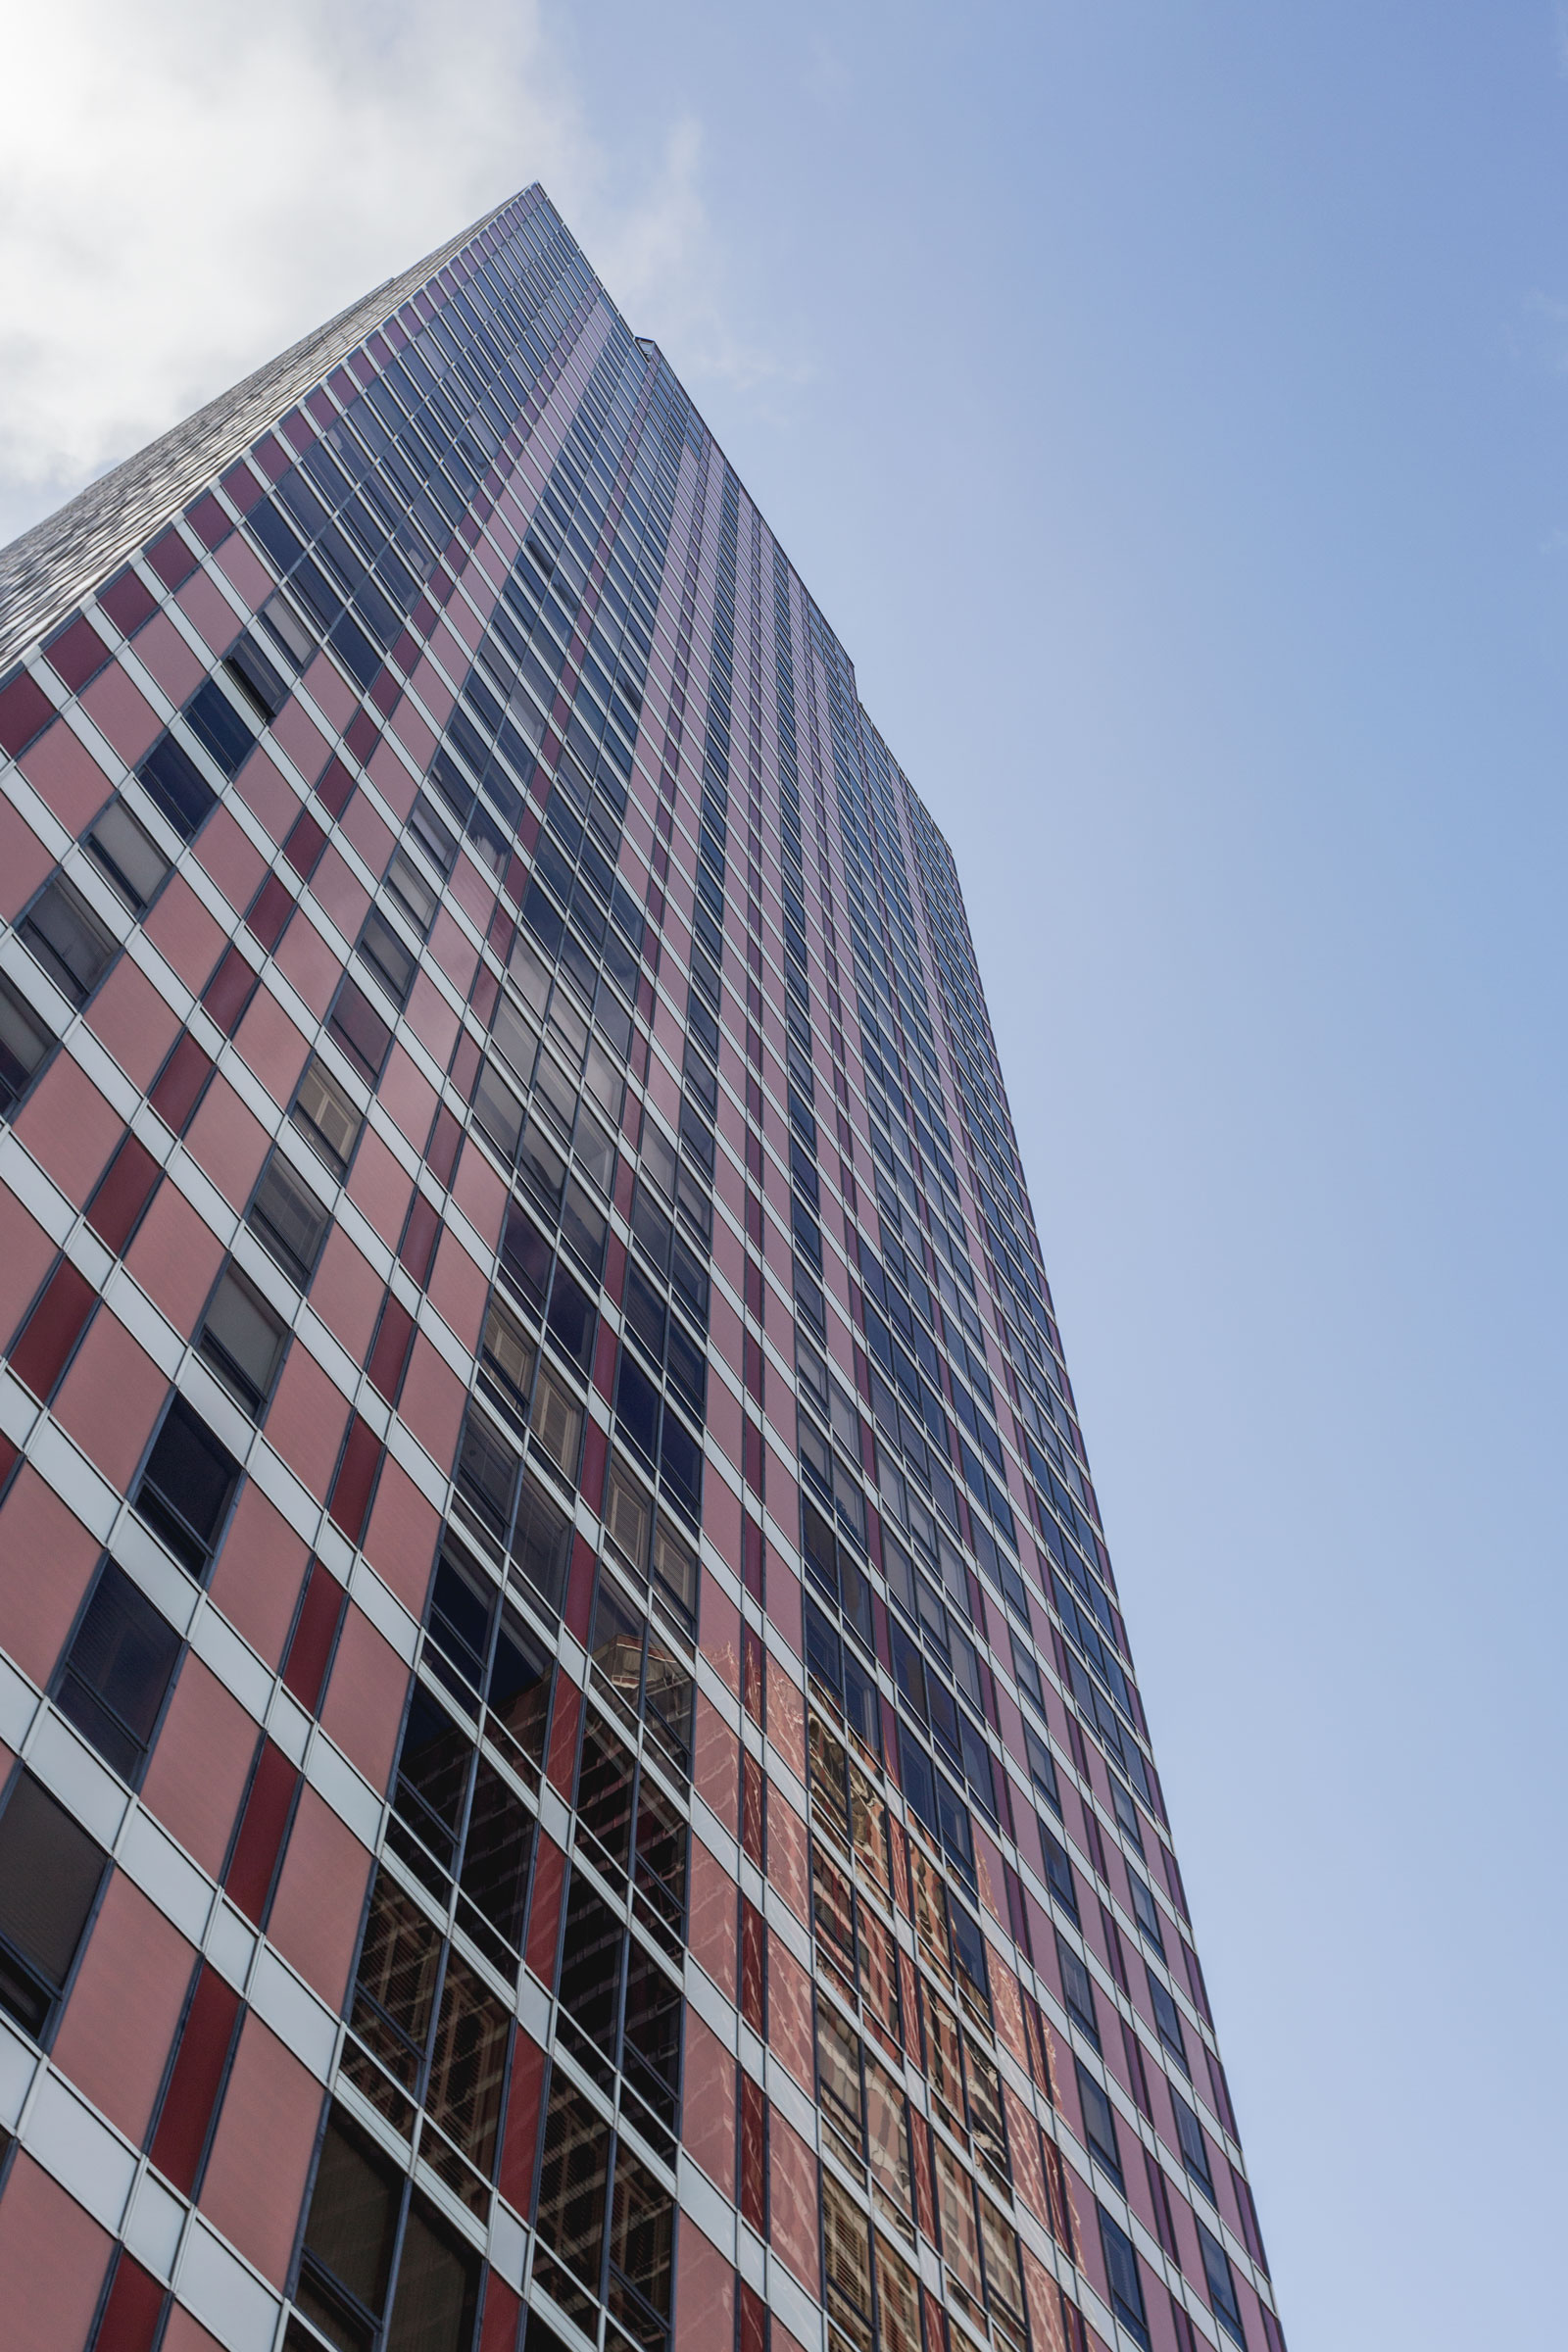 close-up angle of high-rise tower